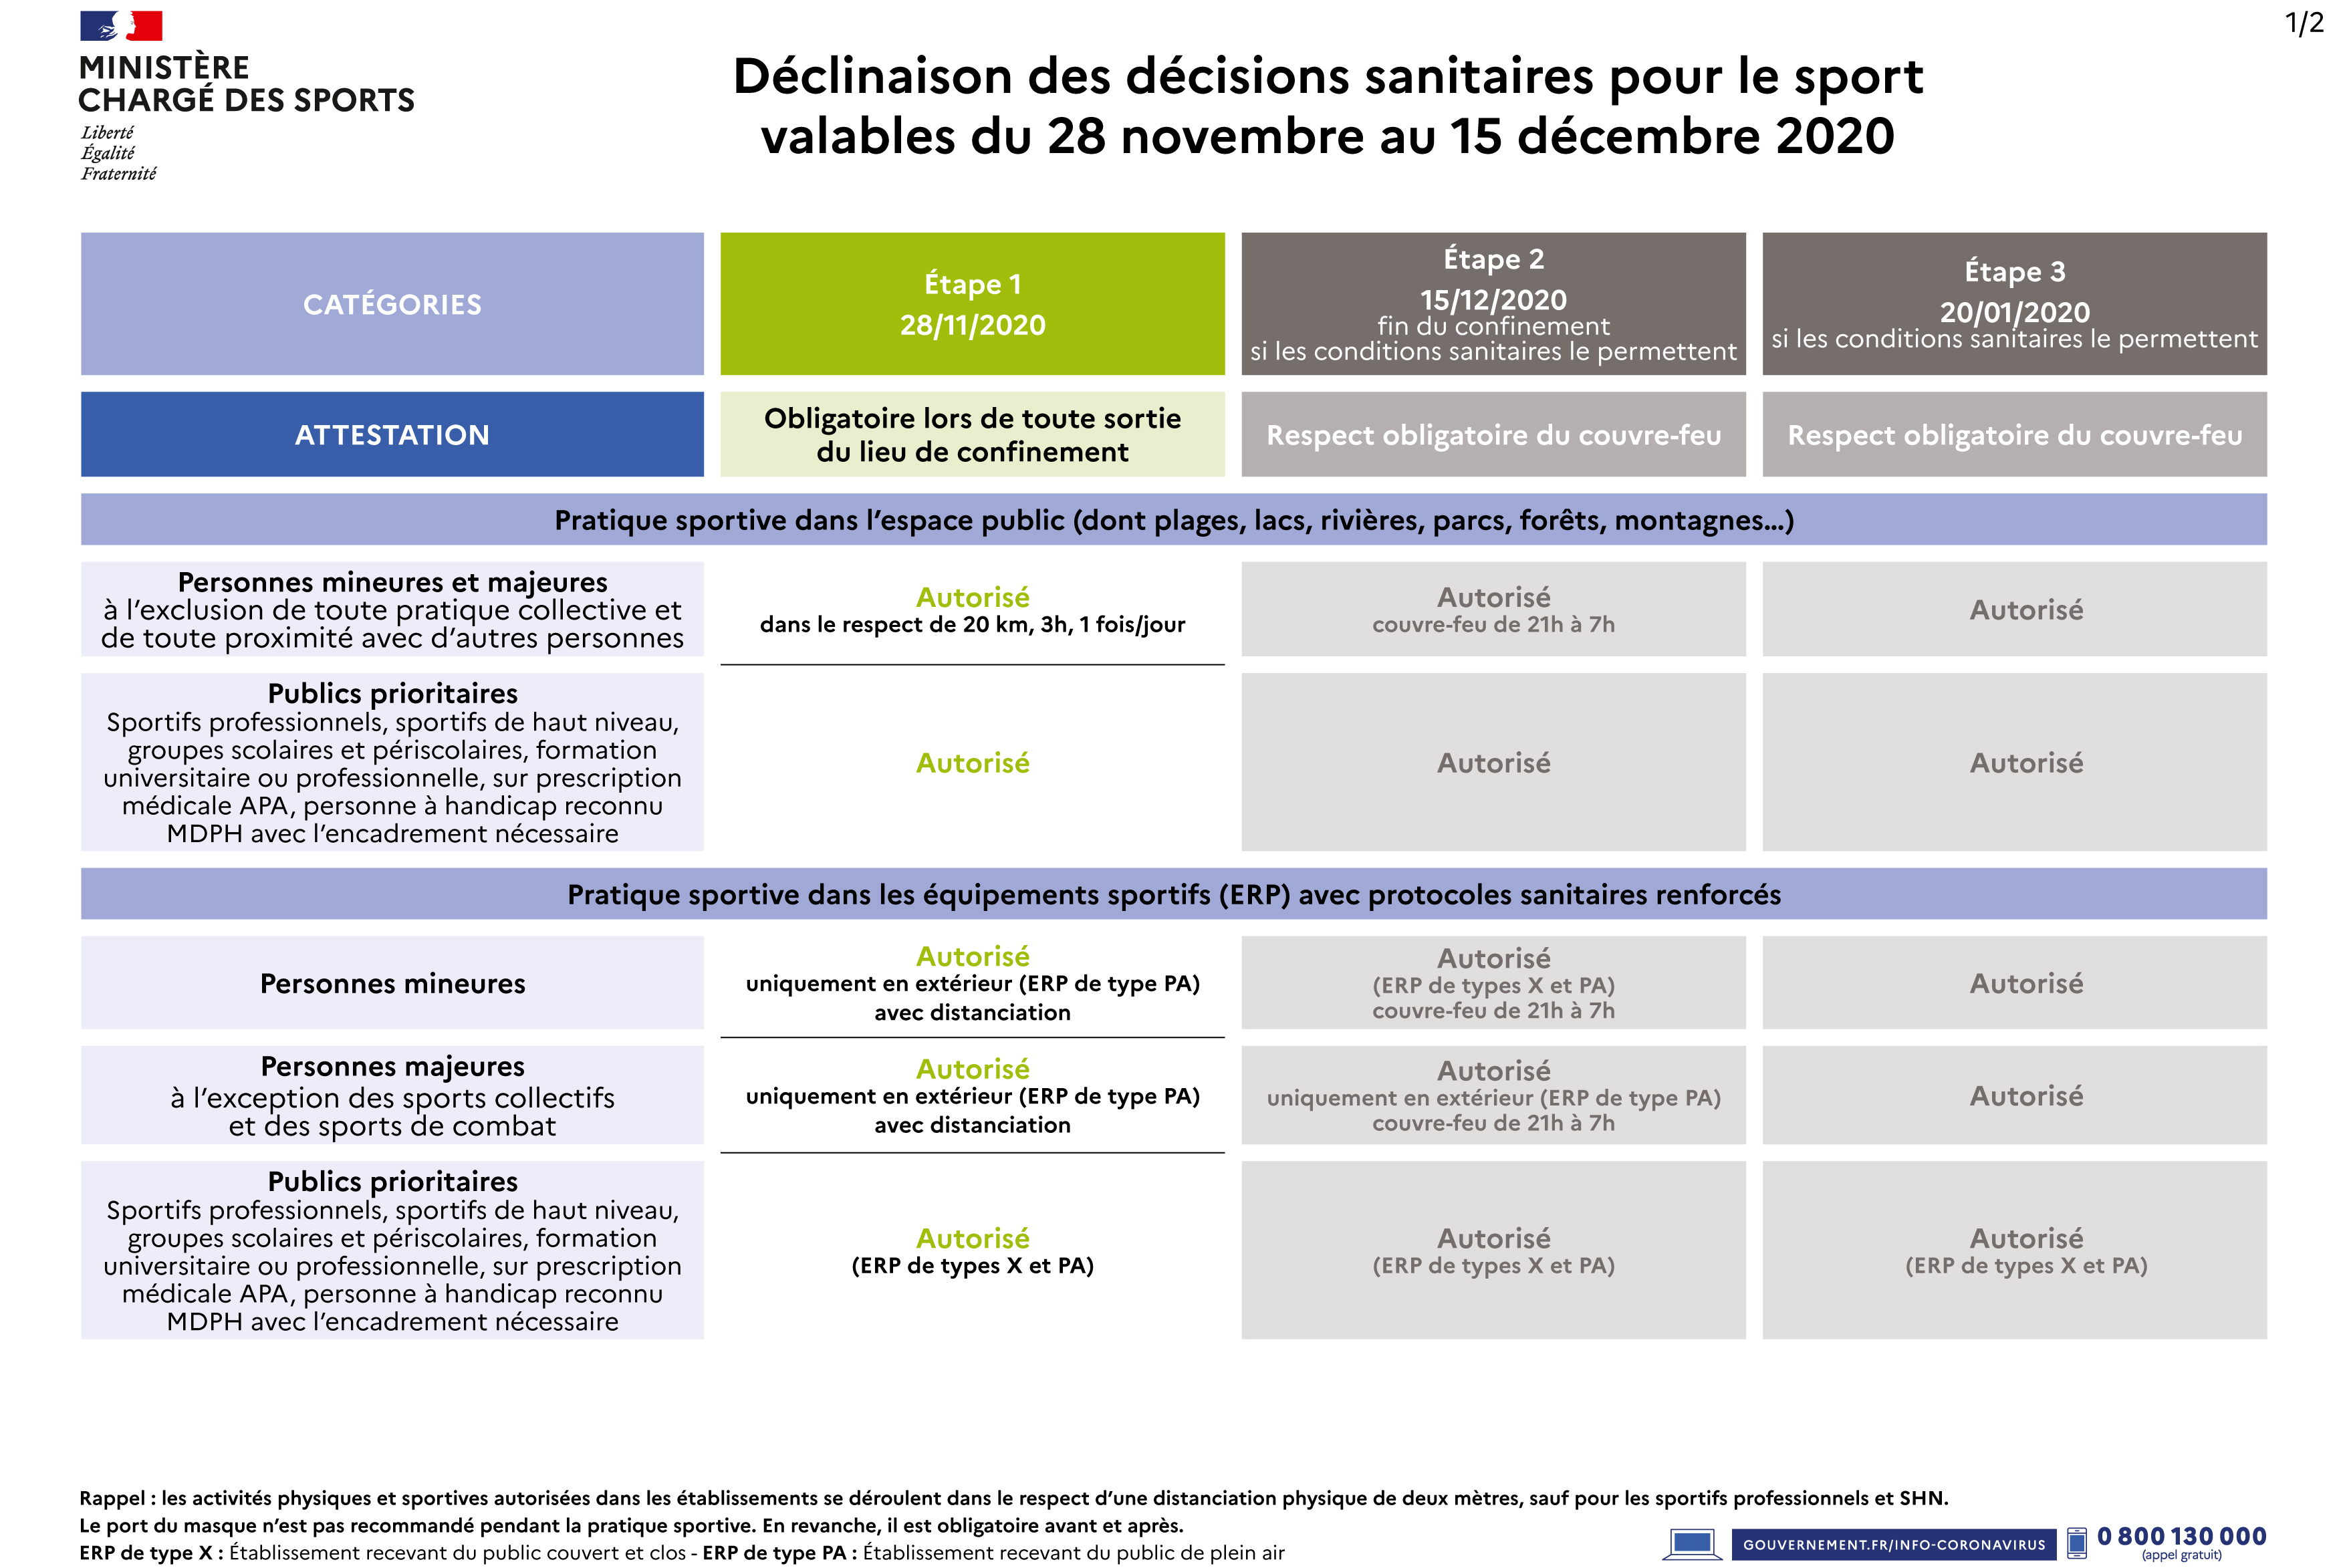 DecisionsSanitairesSport28112020-1.jpg